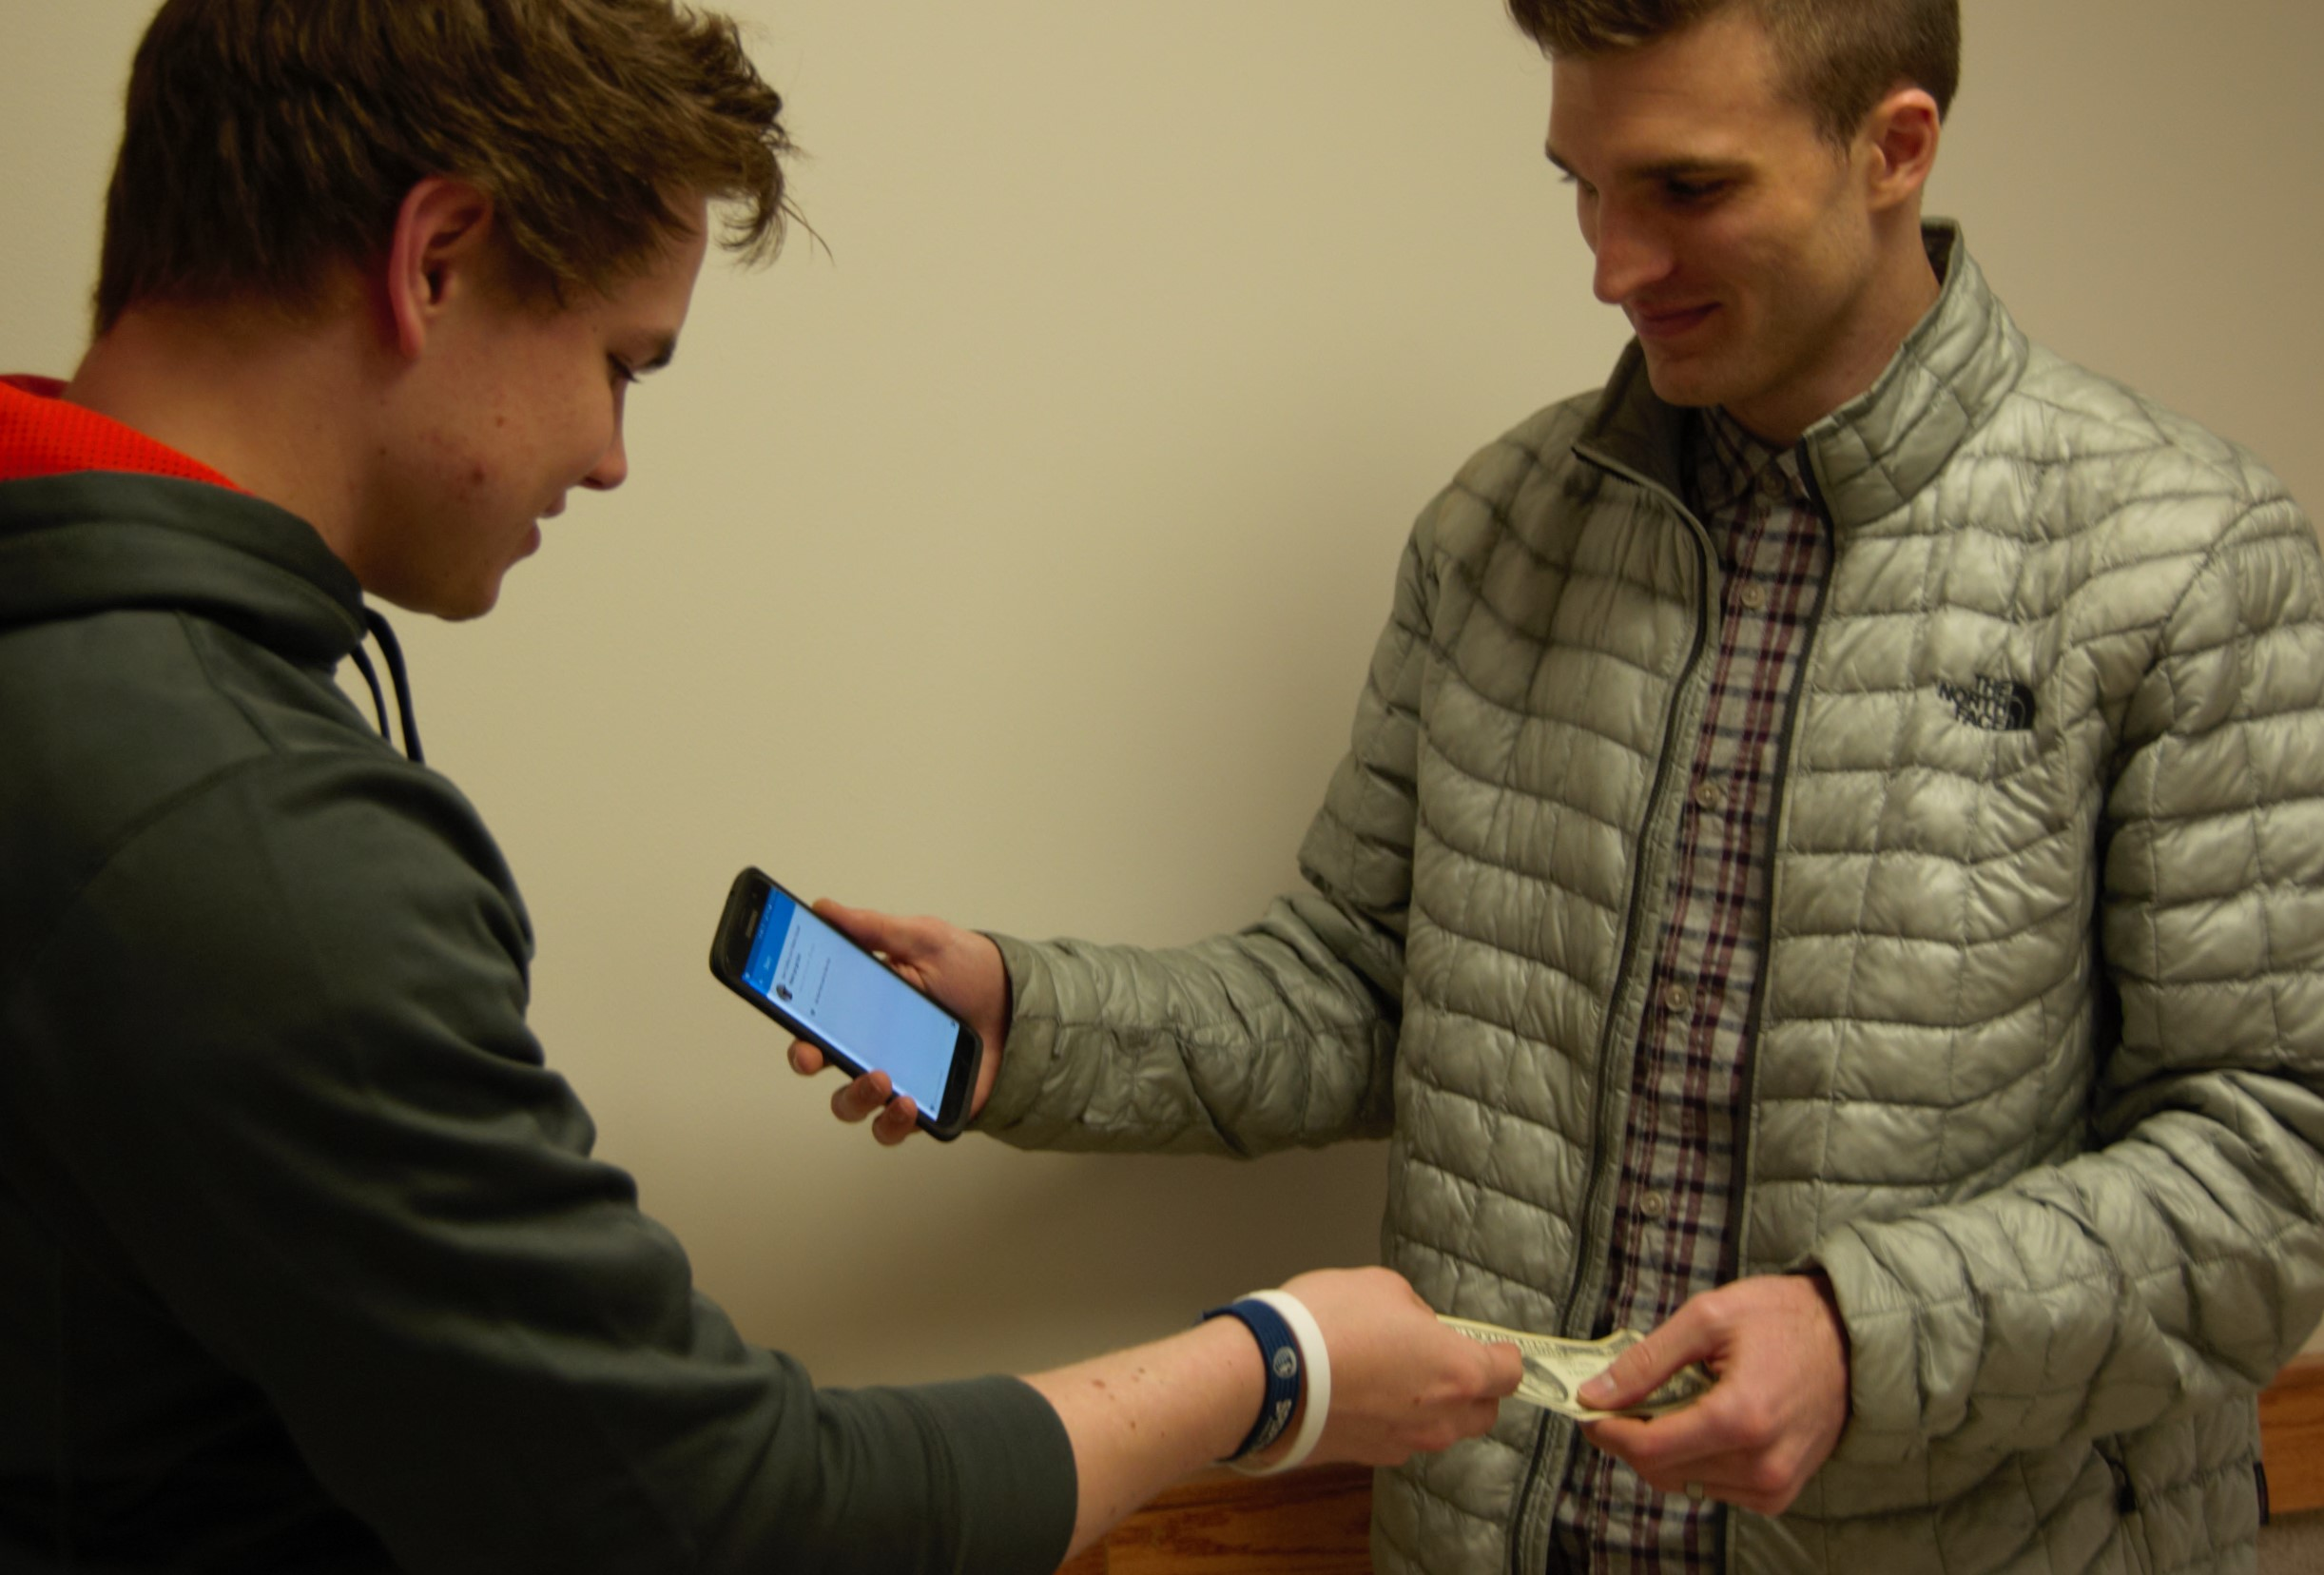 BYU students cut out cash with Venmo - The Daily Universe